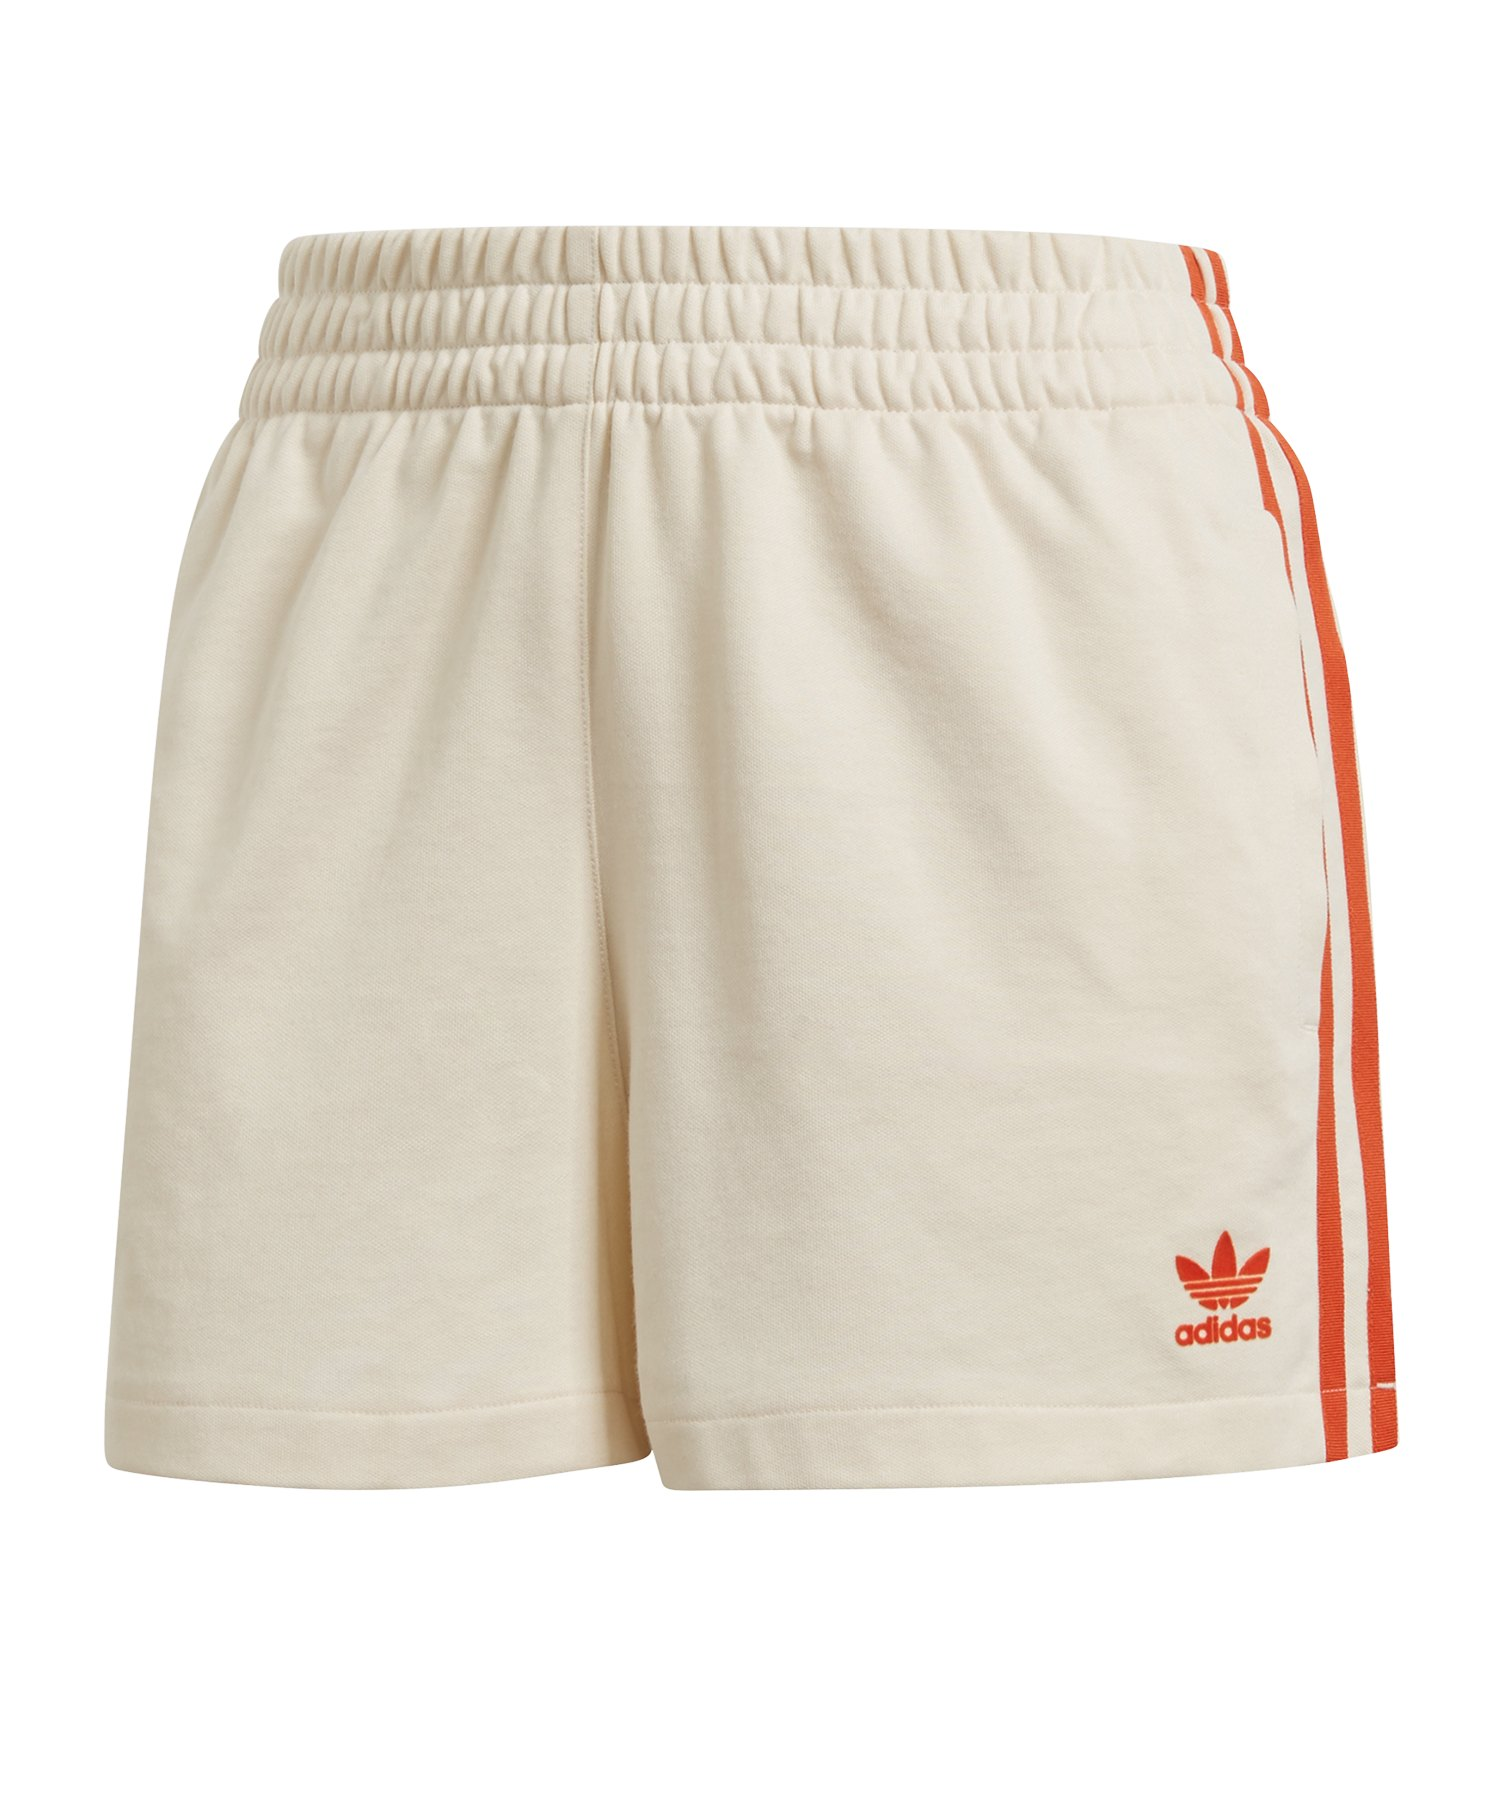 adidas Originals Short Hose kurz Damen Weiss